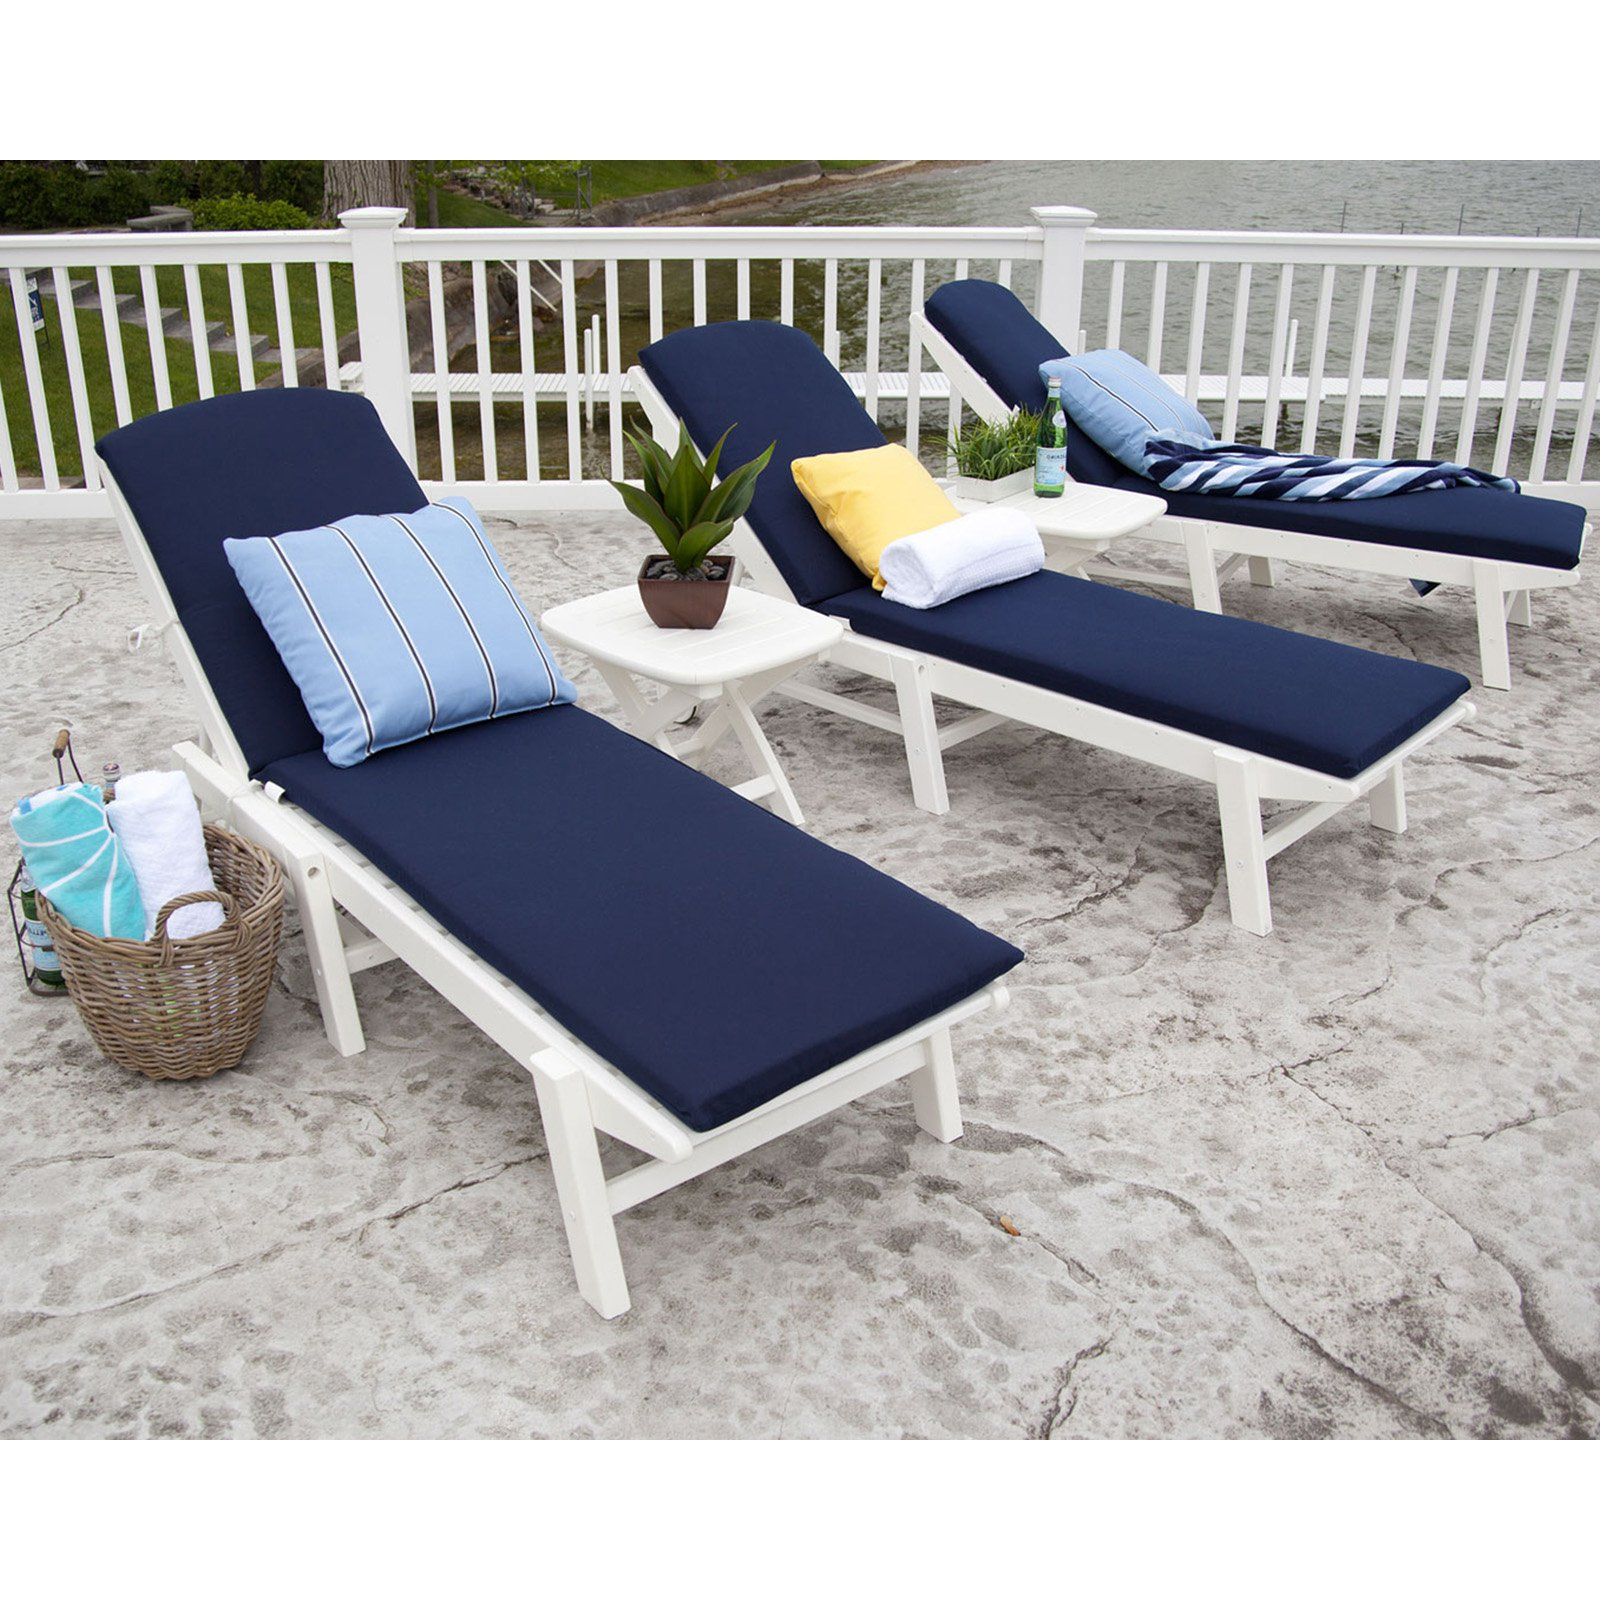 Newest Polywood® Nautical Stackable Wheeled Chaise Inside Stackable Nautical Outdoor Chaise Lounges (View 11 of 25)